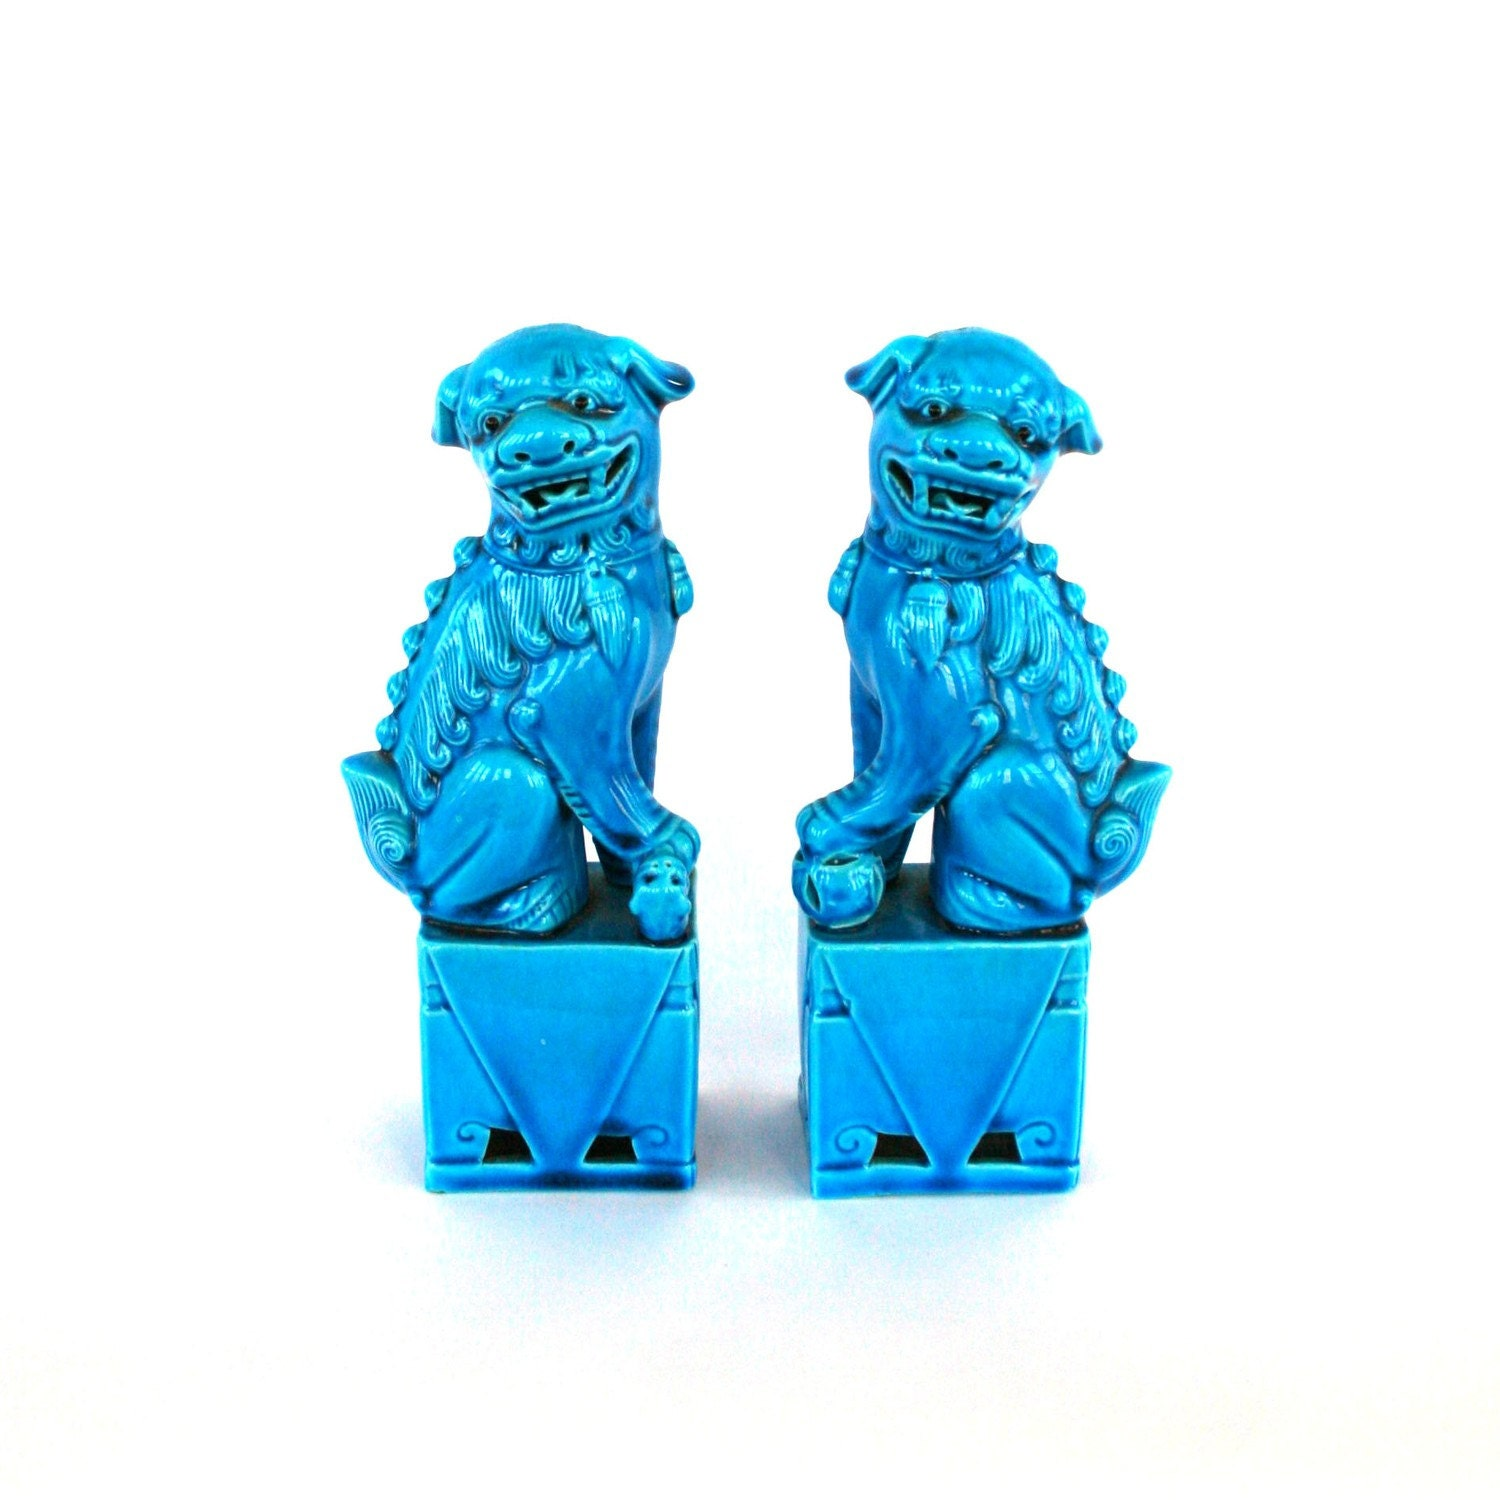 Antique Turquoise Blue Foo Dogs Pair Lions Statue Elle : ilfullxfull217497672 from www.etsy.com size 1500 x 1500 jpeg 169kB